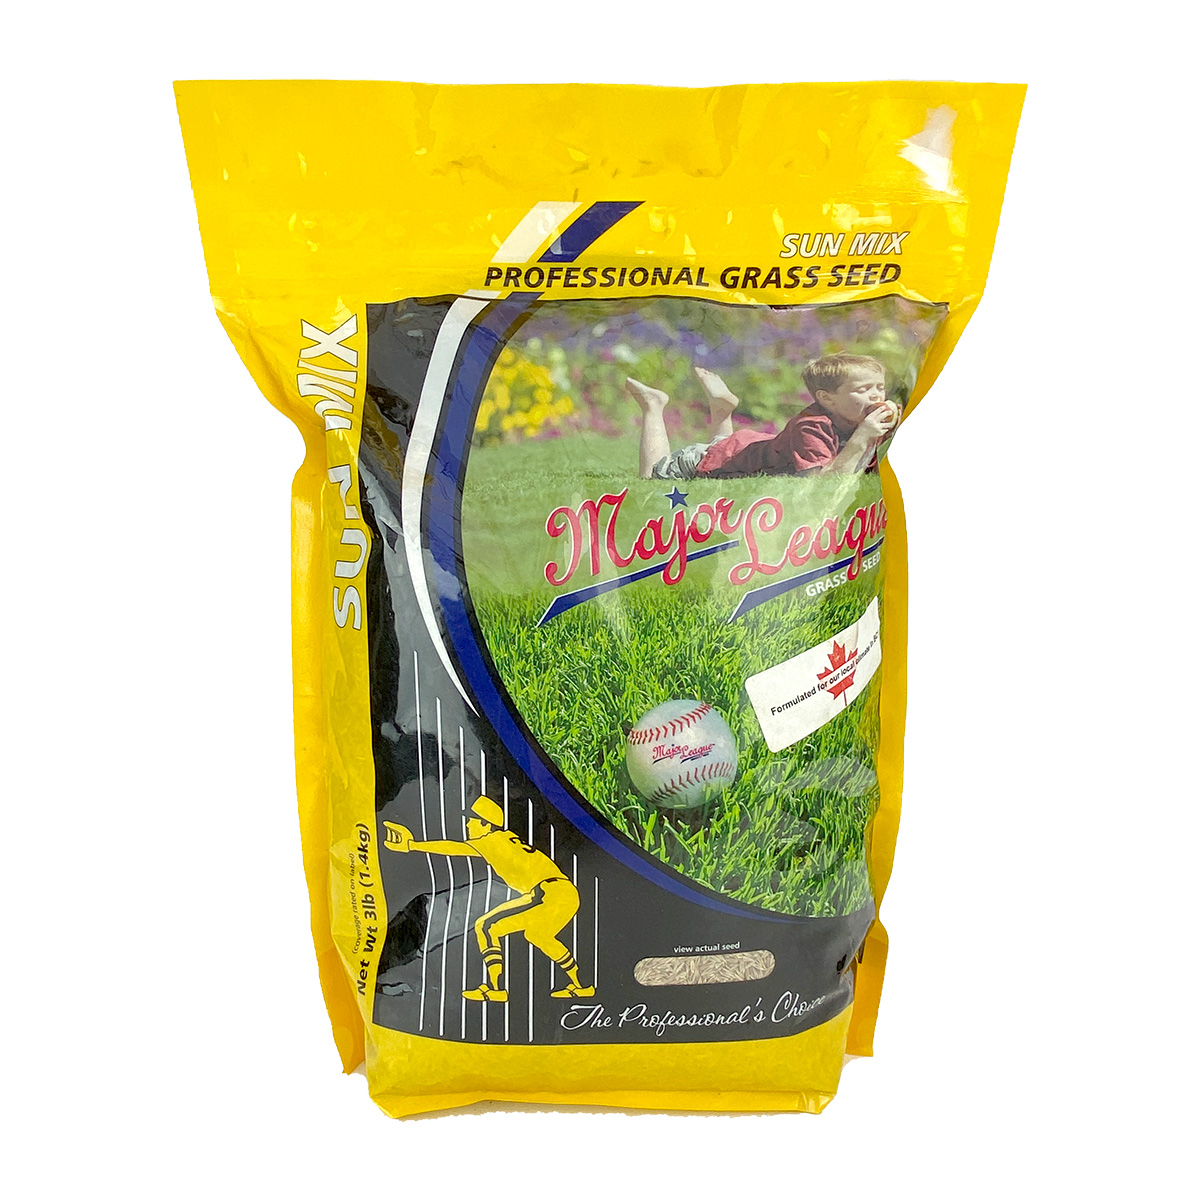 Major League Grass Seed Sun Mix 1400g